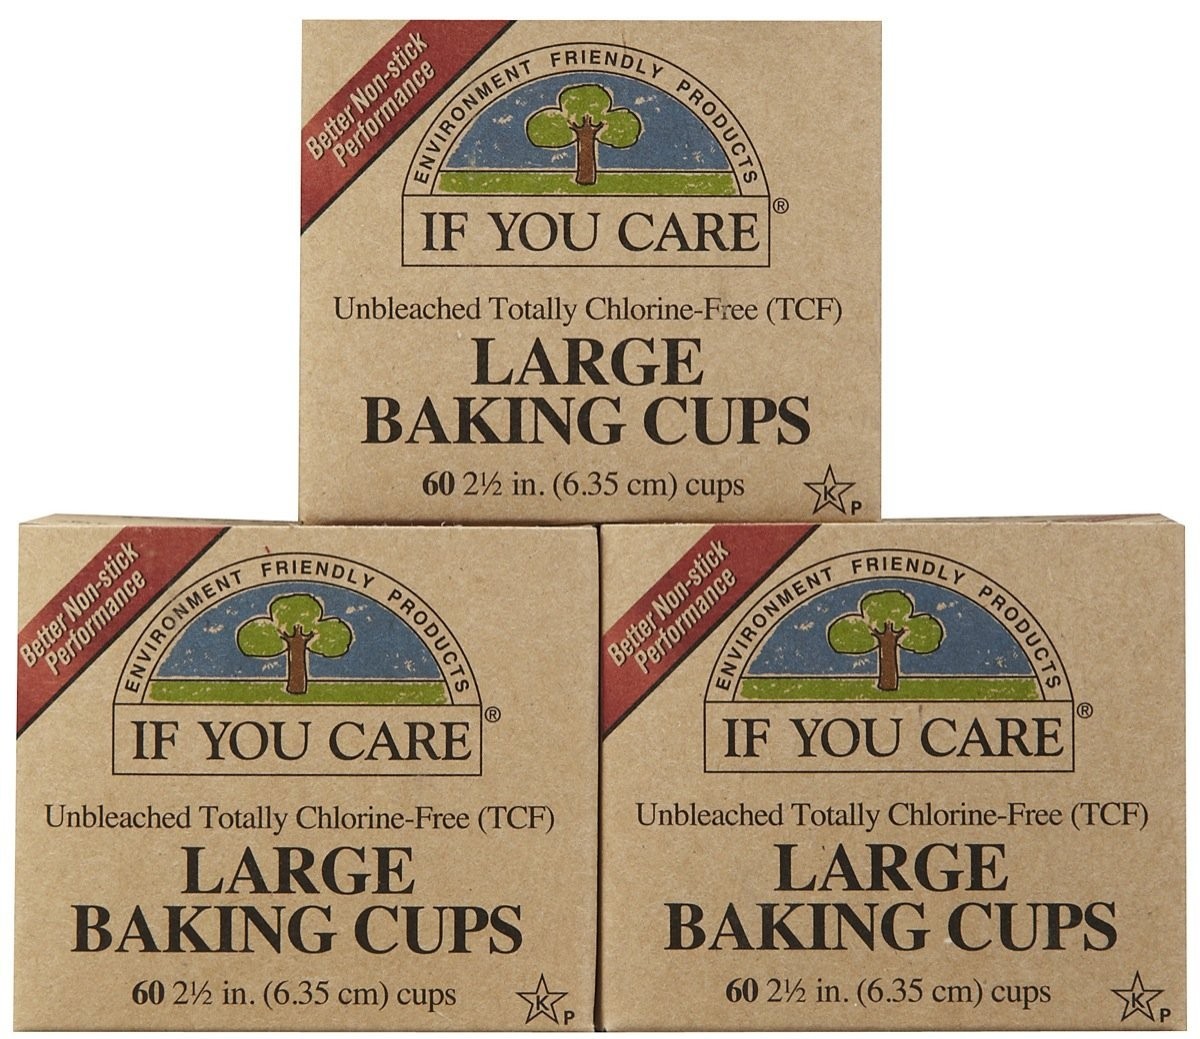 If You Care Unbleached Large Baking Cups, 60 ct, 3 pk Alere